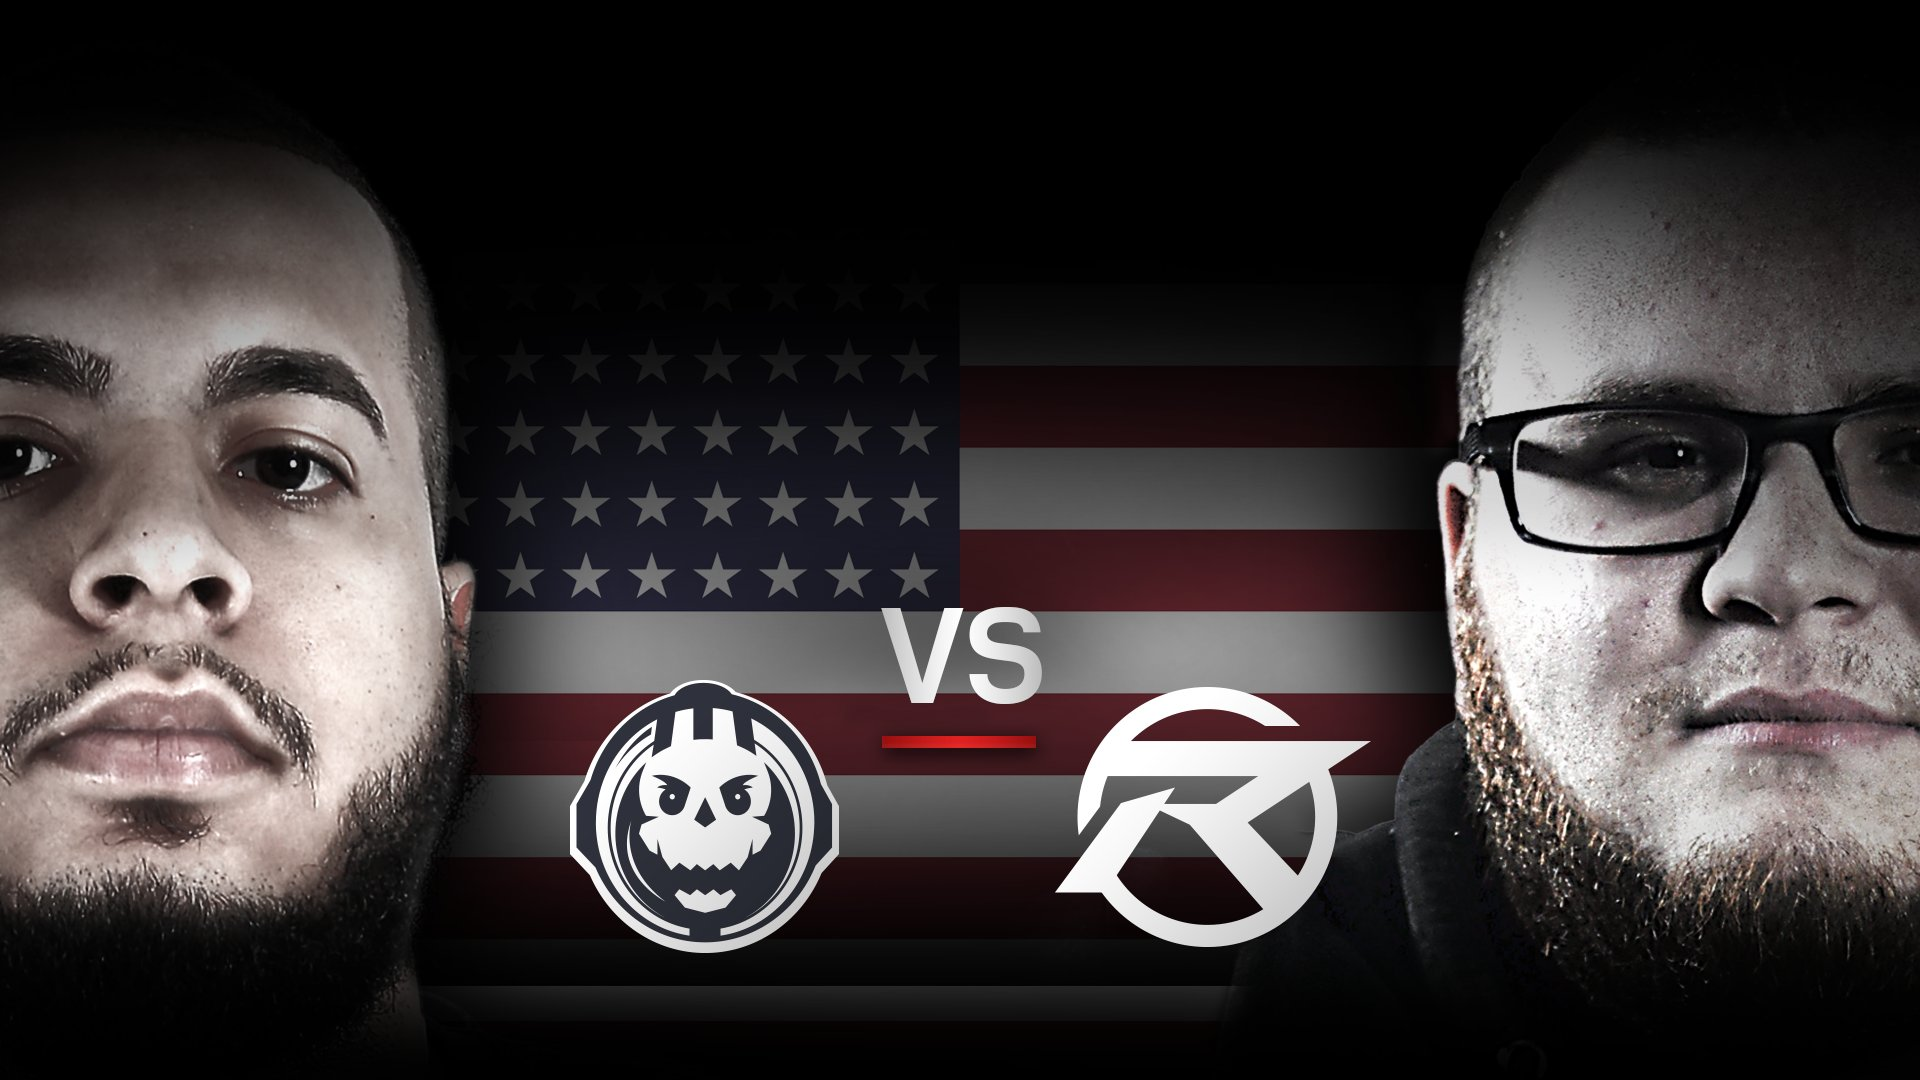 LIVE NOW: A North American Showmatch between @Render_eSports and @ReactiveHQ. WATCH: https://t.co/6Rp7mmxTzQ https://t.co/7VfhdvQFFx